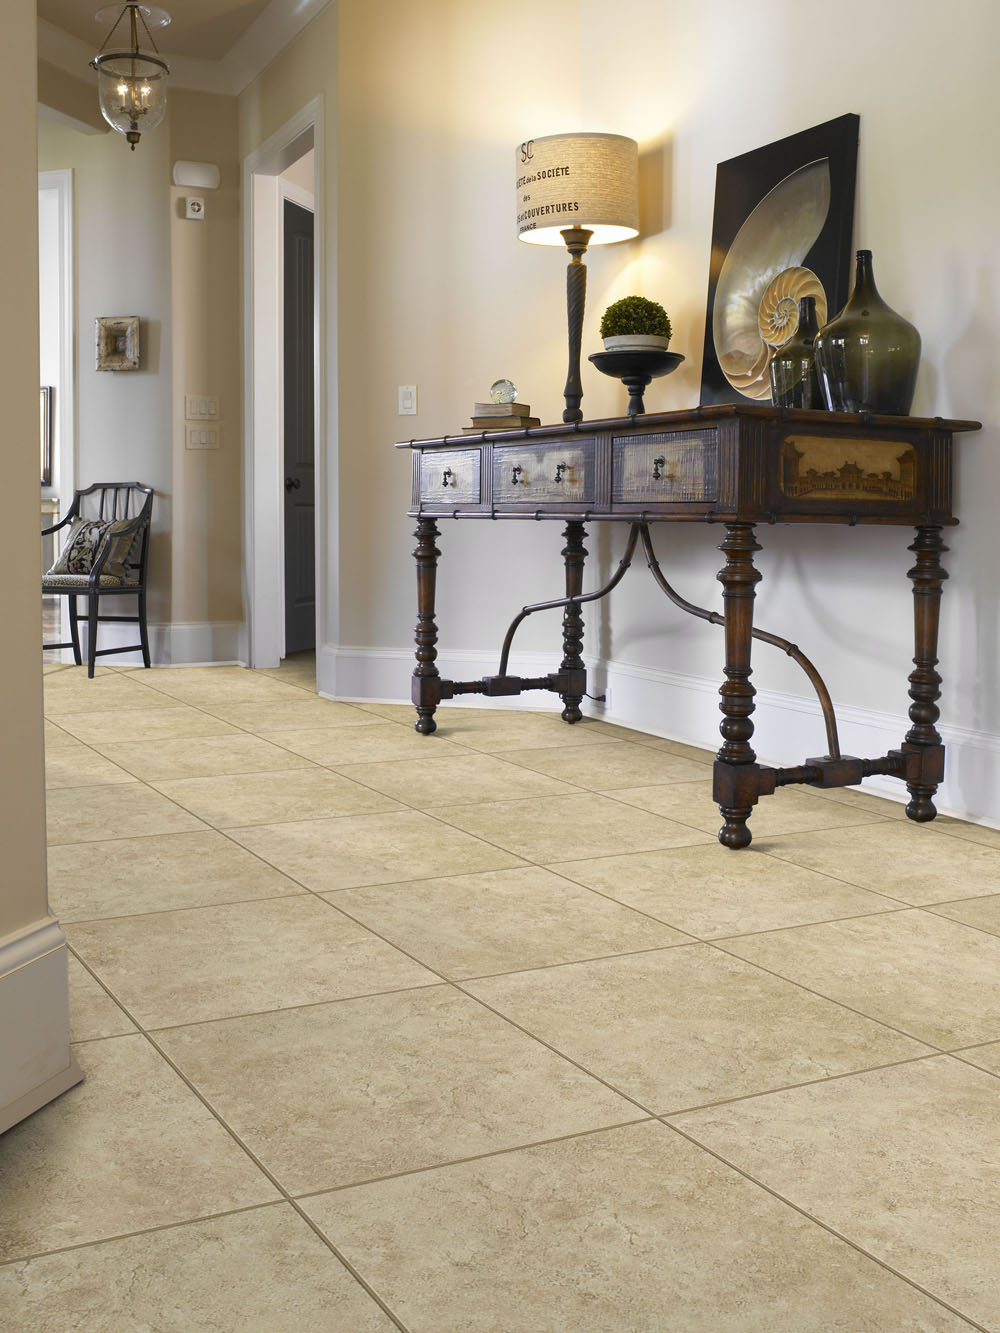 best flooring options tile flooring in entryway with front table and lamp PBDDRLR